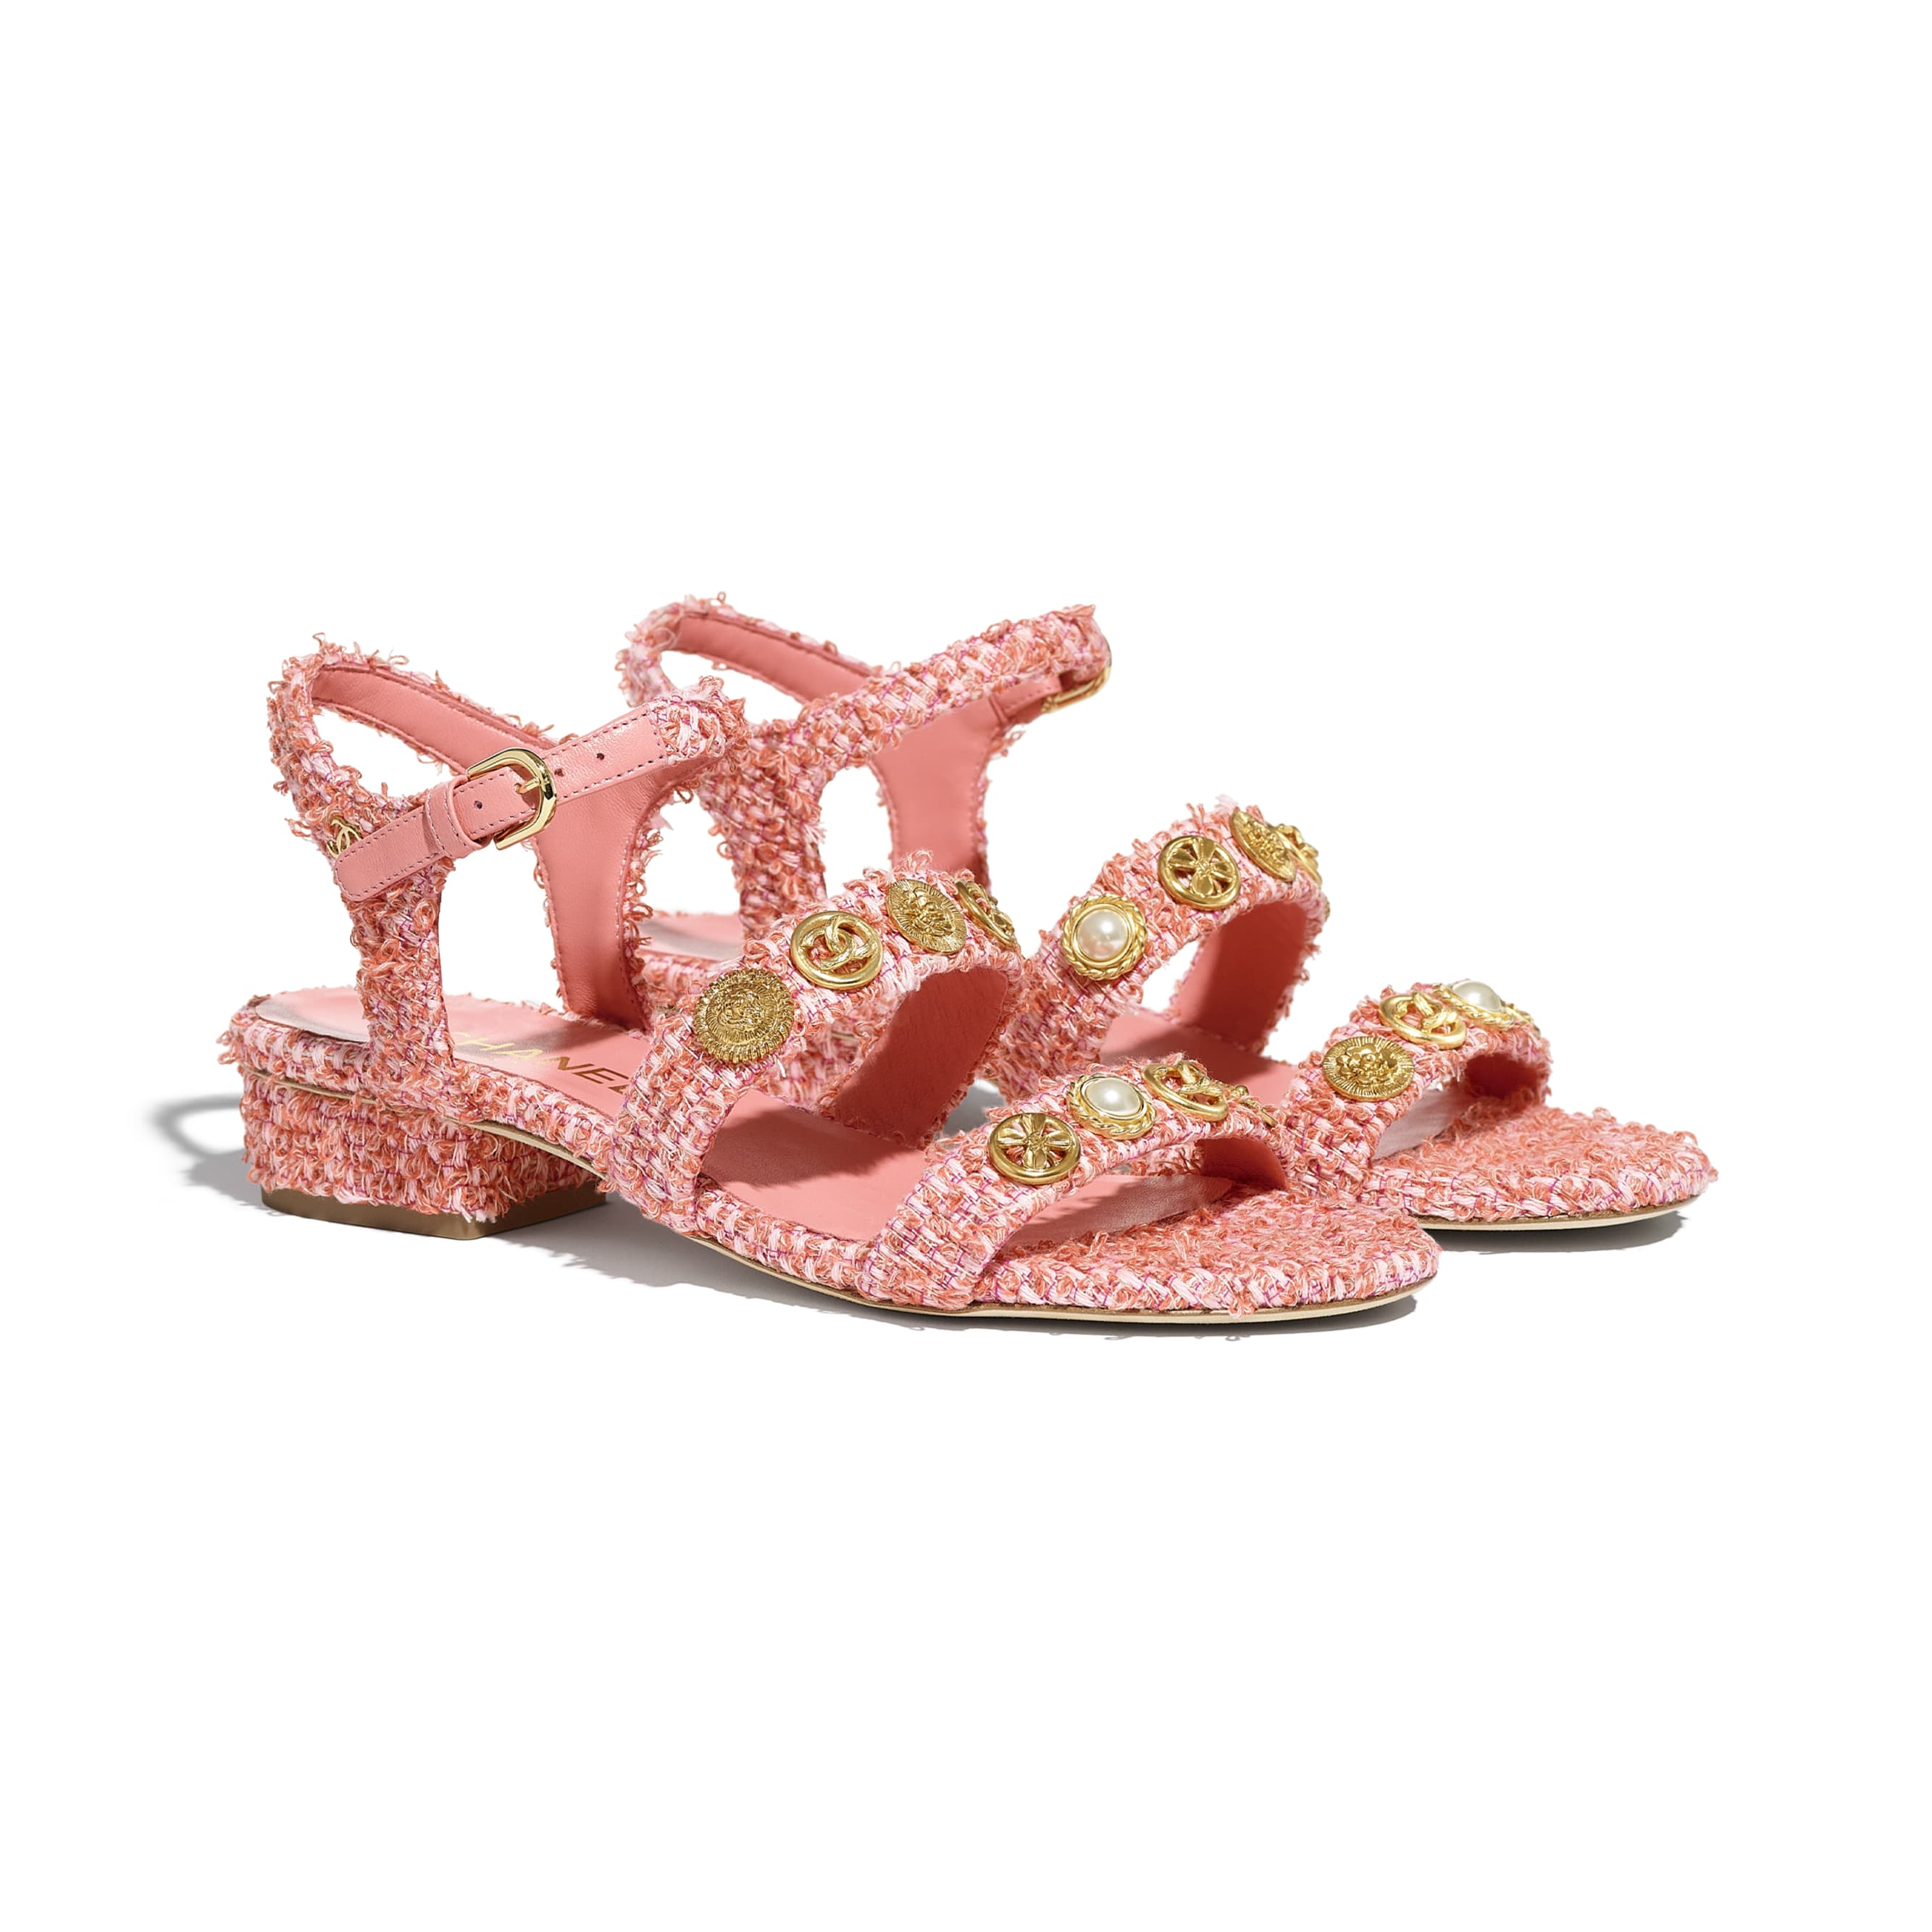 Sandals - Coral & Pink - Cotton Tweed & Jewellery - CHANEL - Alternative view - see standard sized version